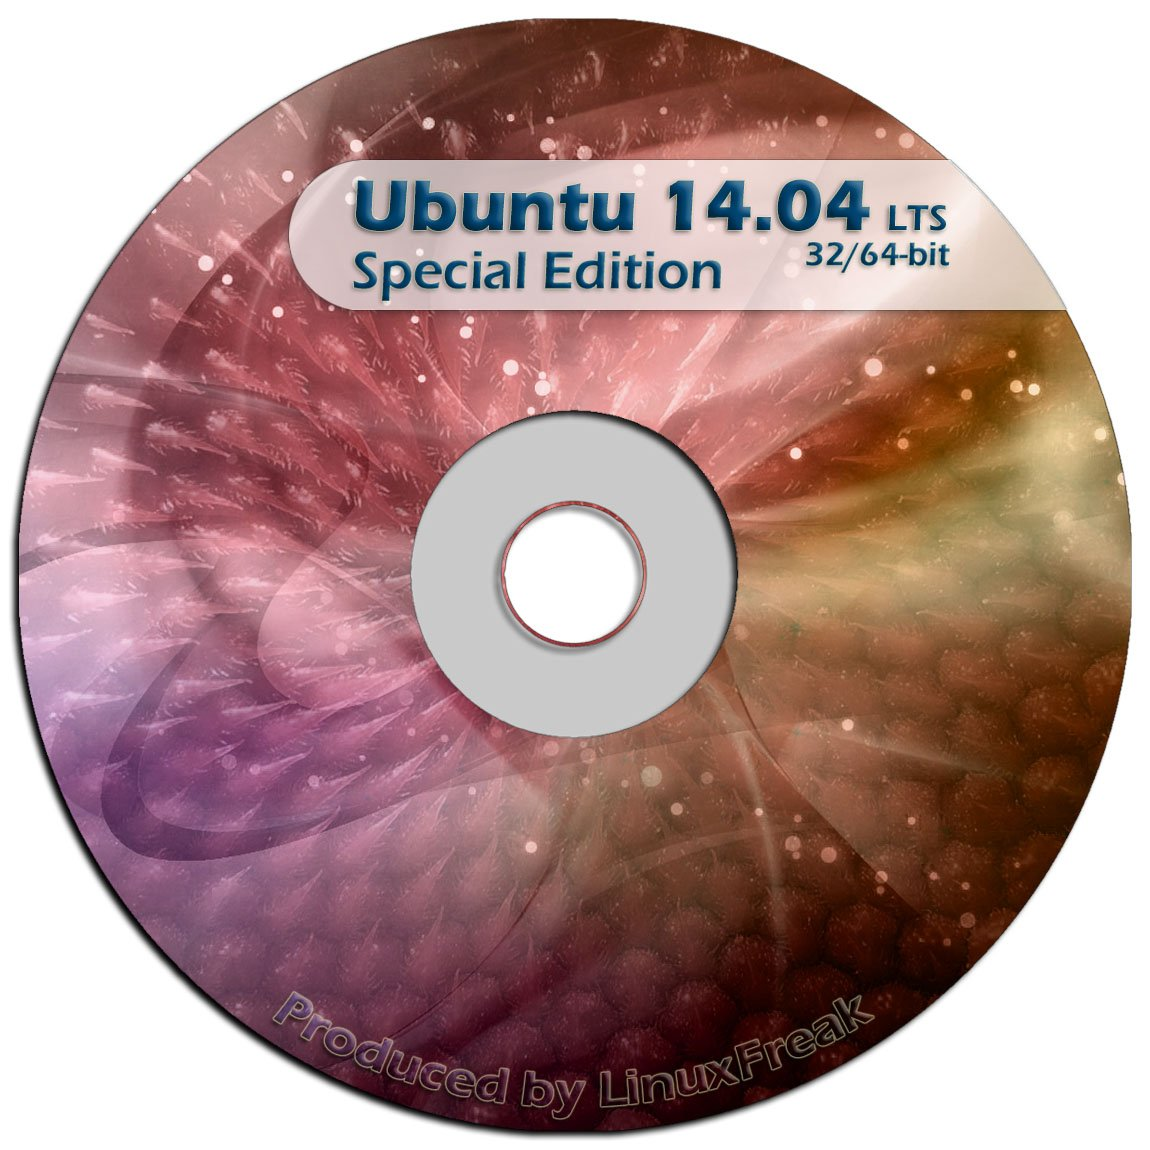 Ubuntu Linux 14.04 Special Edition DVD - Includes both 32-bit and 64-bit Versions - Long Term Support